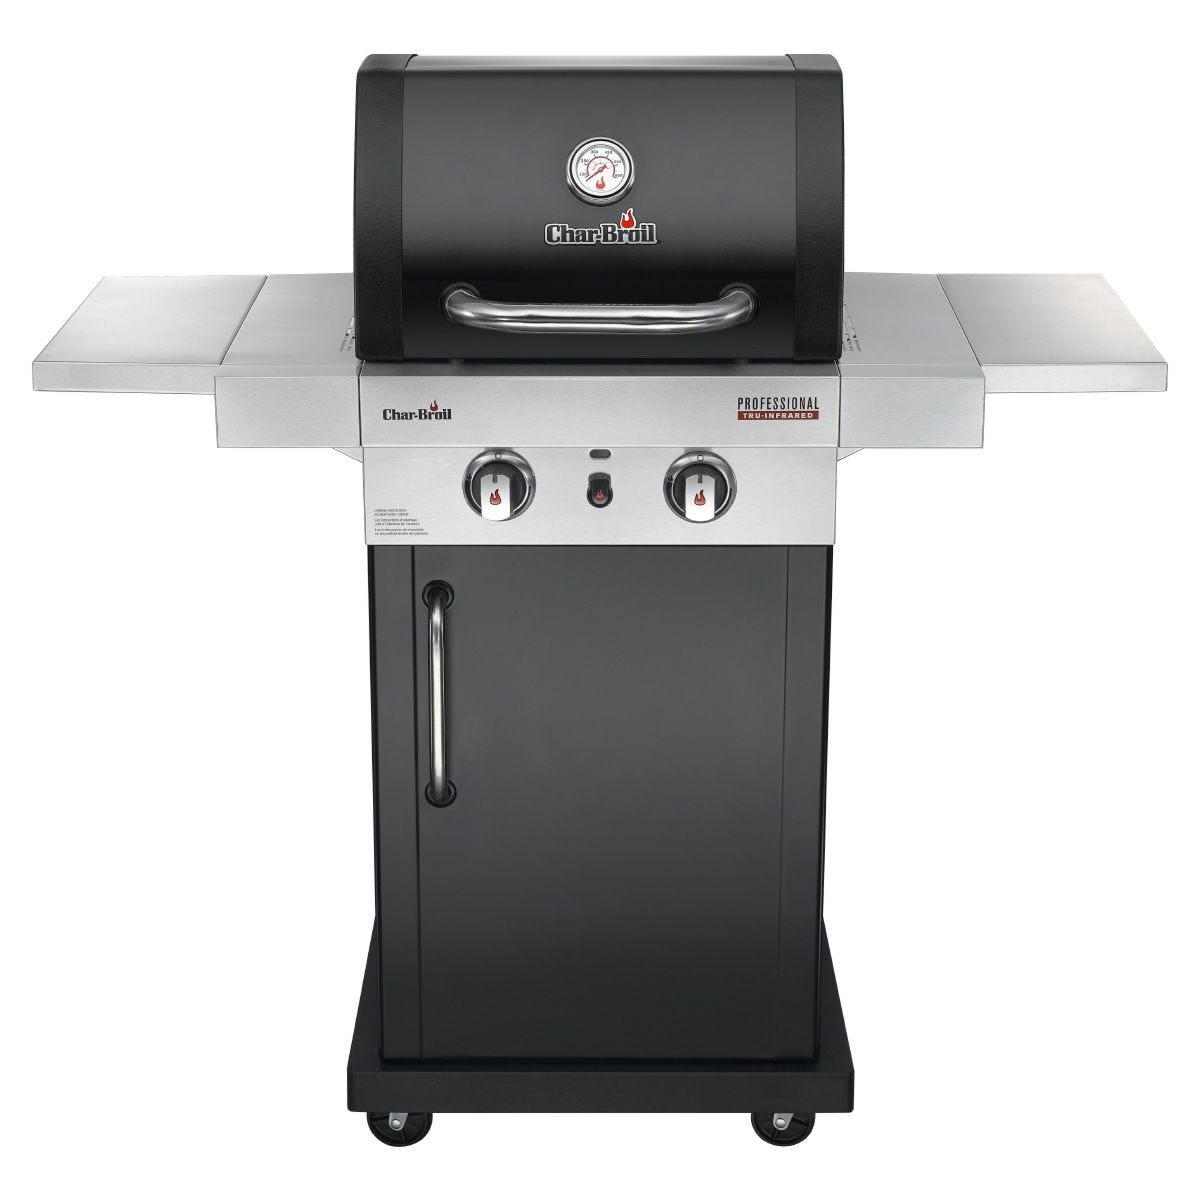 Char-Broil Professional 2200B 2 Burner Gas BBQ - Black